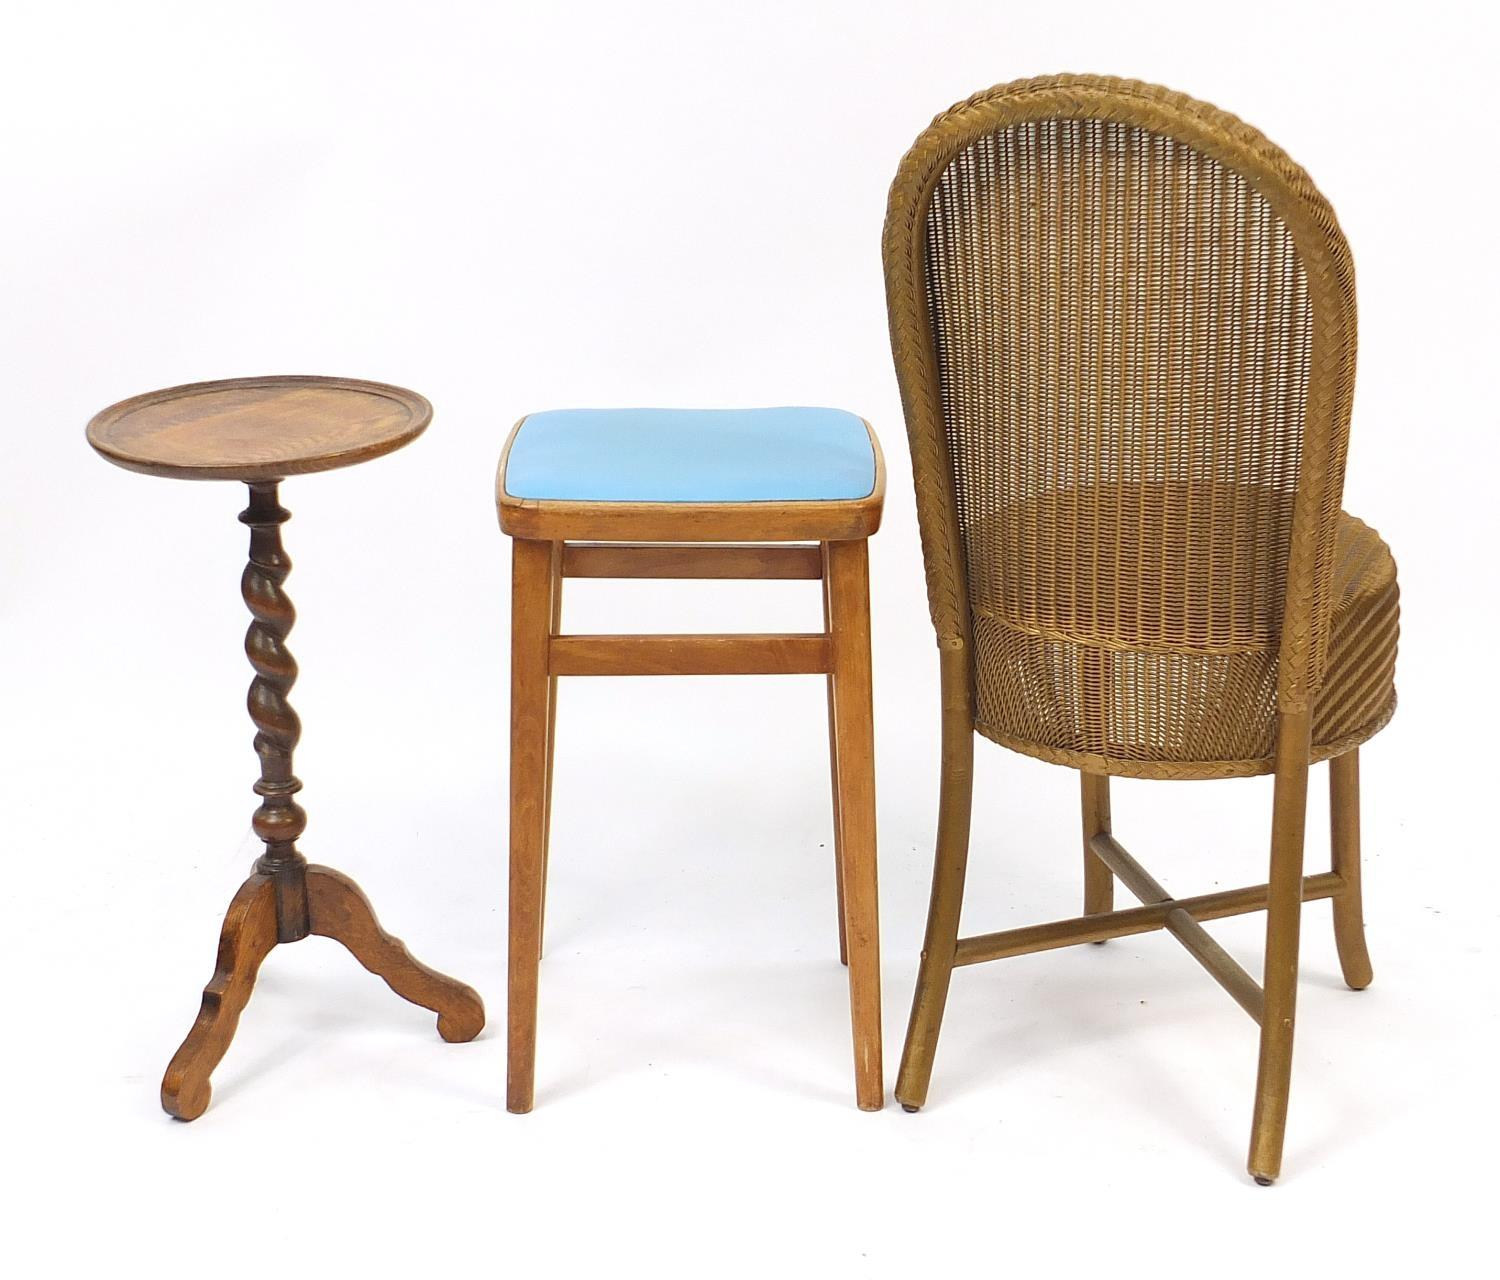 Occasional furniture including a Lloyd loom chair and barley twist tripod occasional table, the - Image 3 of 3